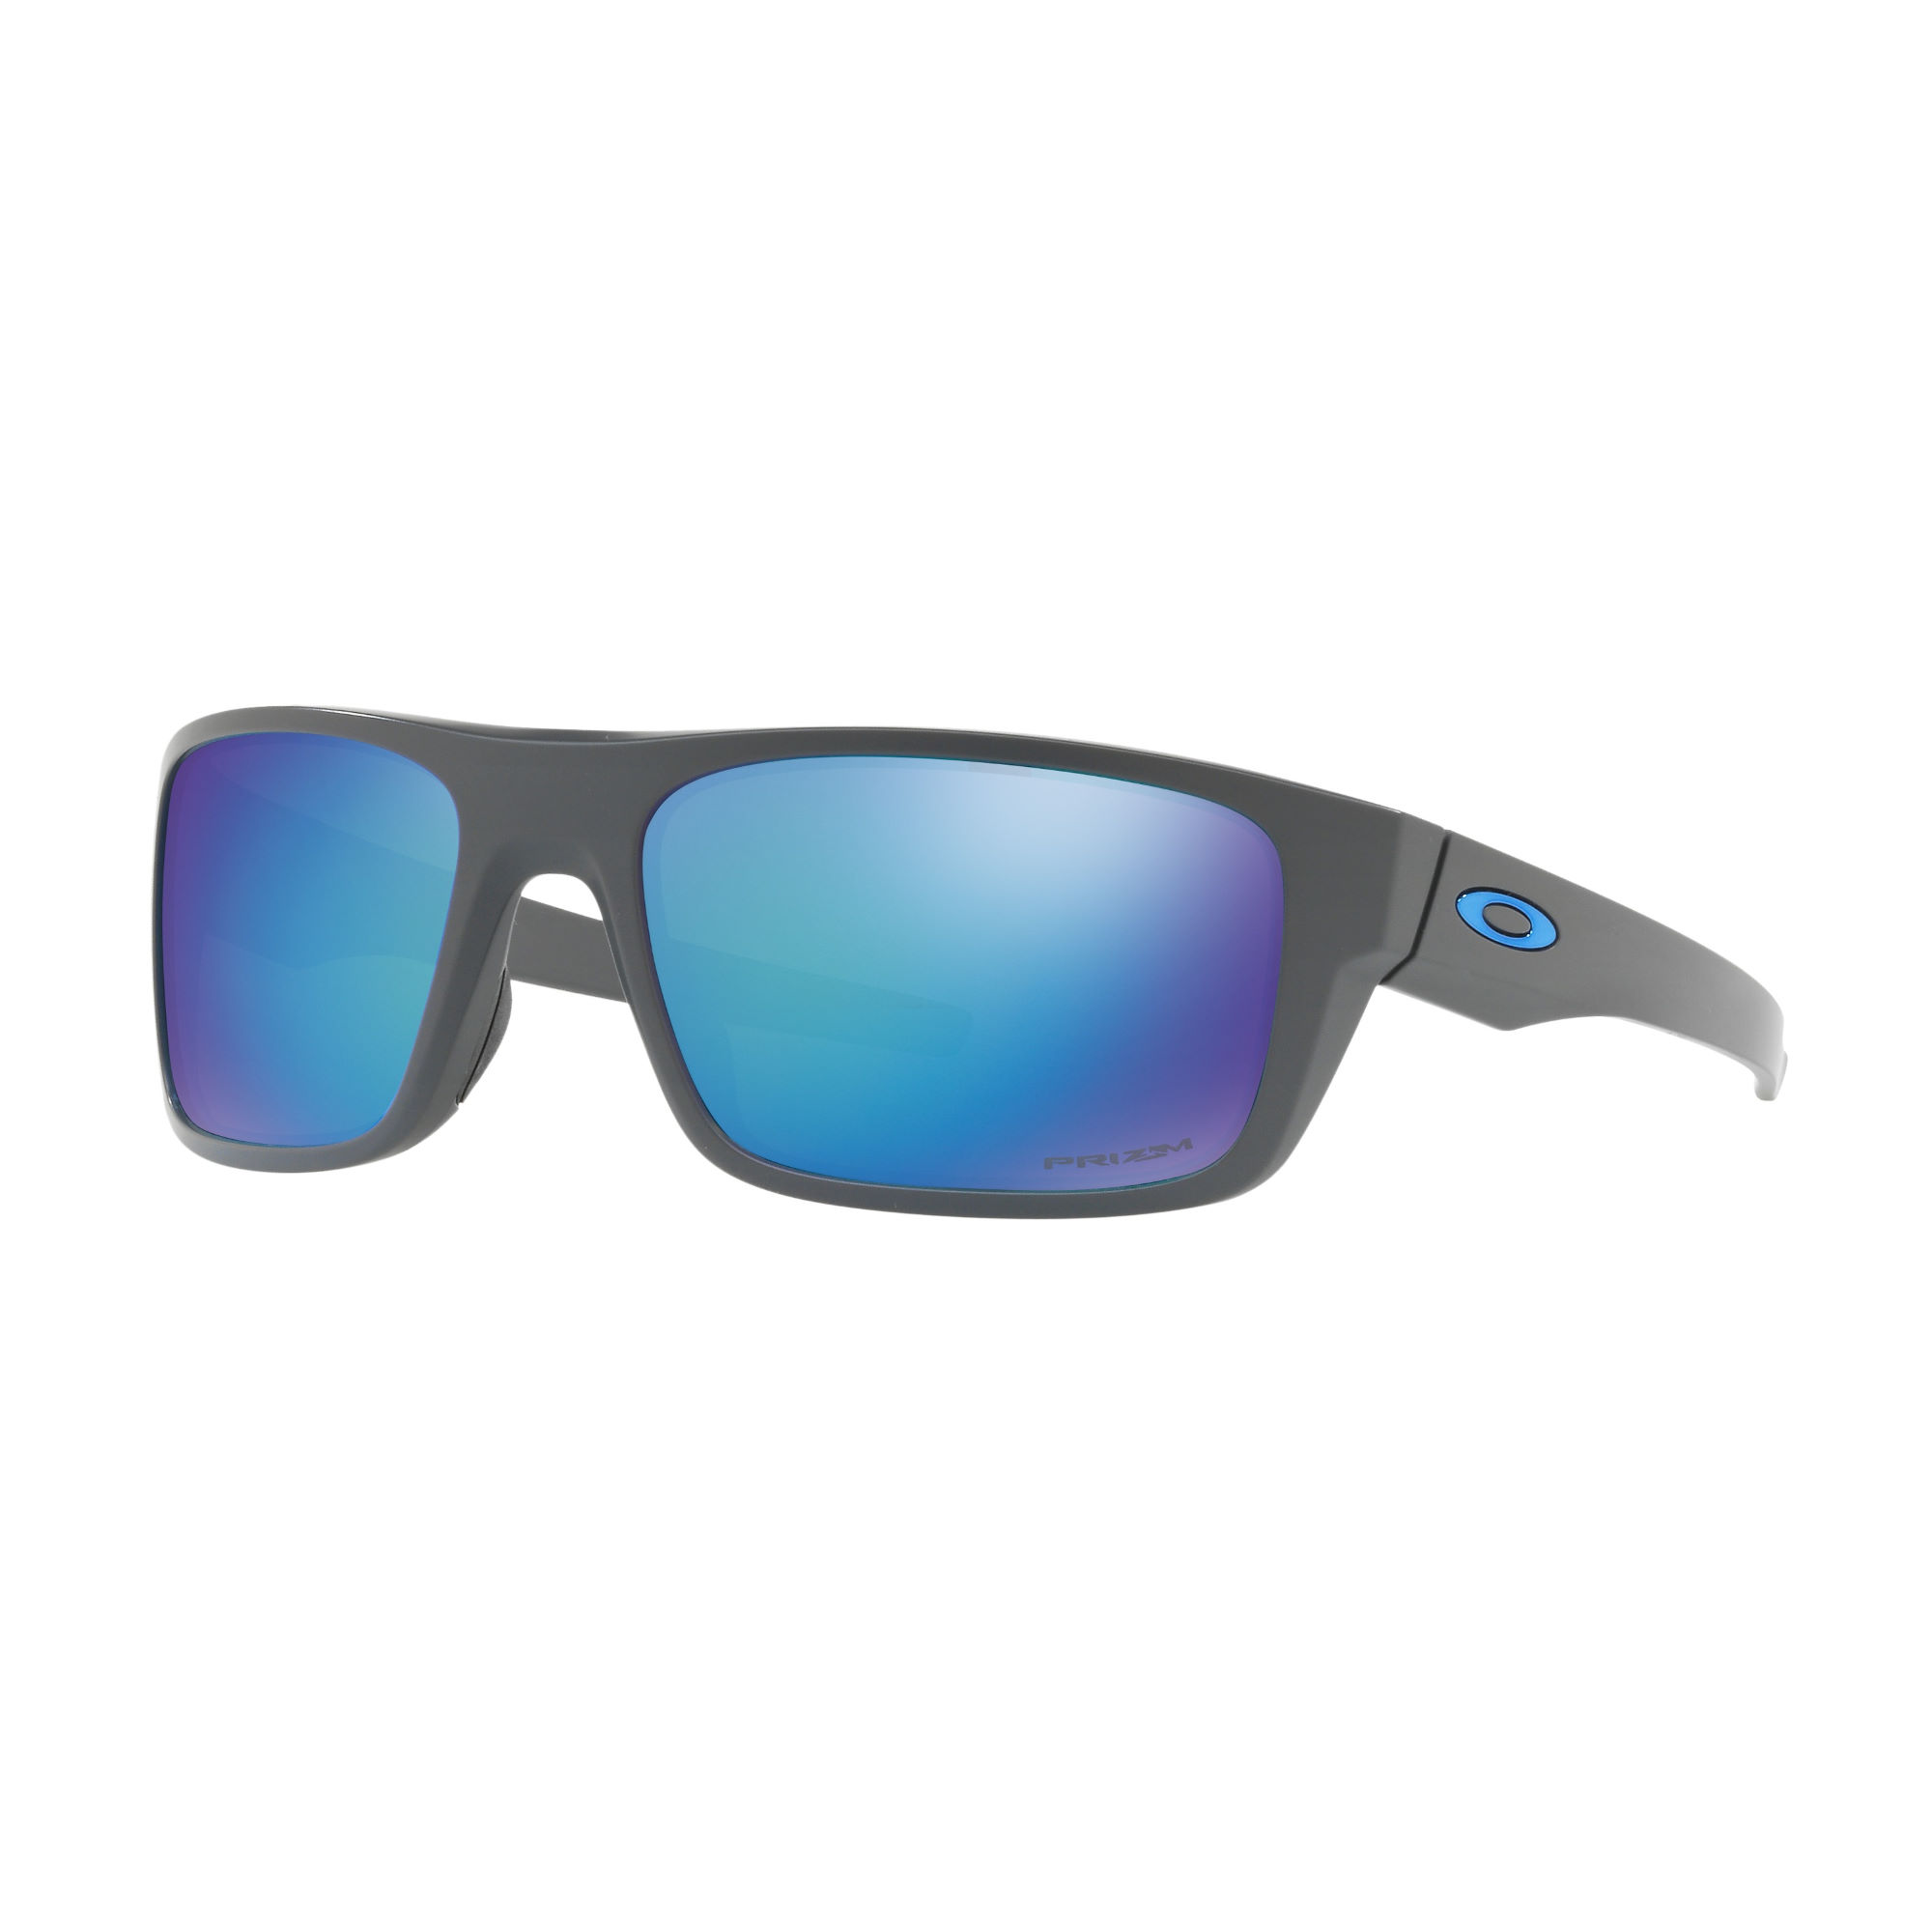 Oakley Model: DROP POINT 9367, Colour Code: 06, Frame Colour: Matte dark grey